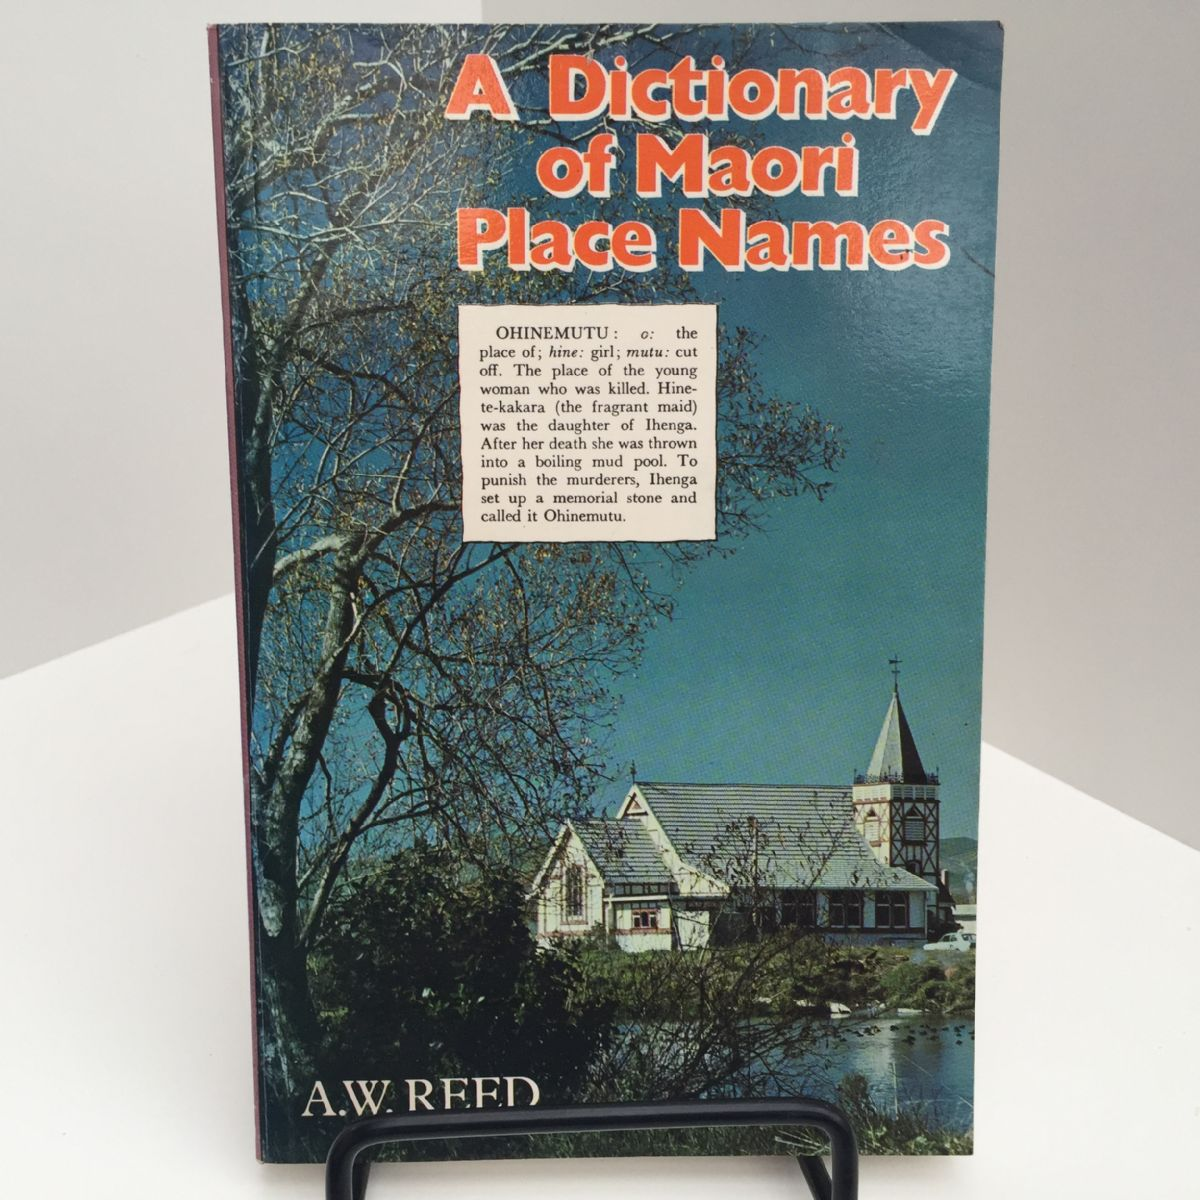 A Dictionary of Maori Place Names